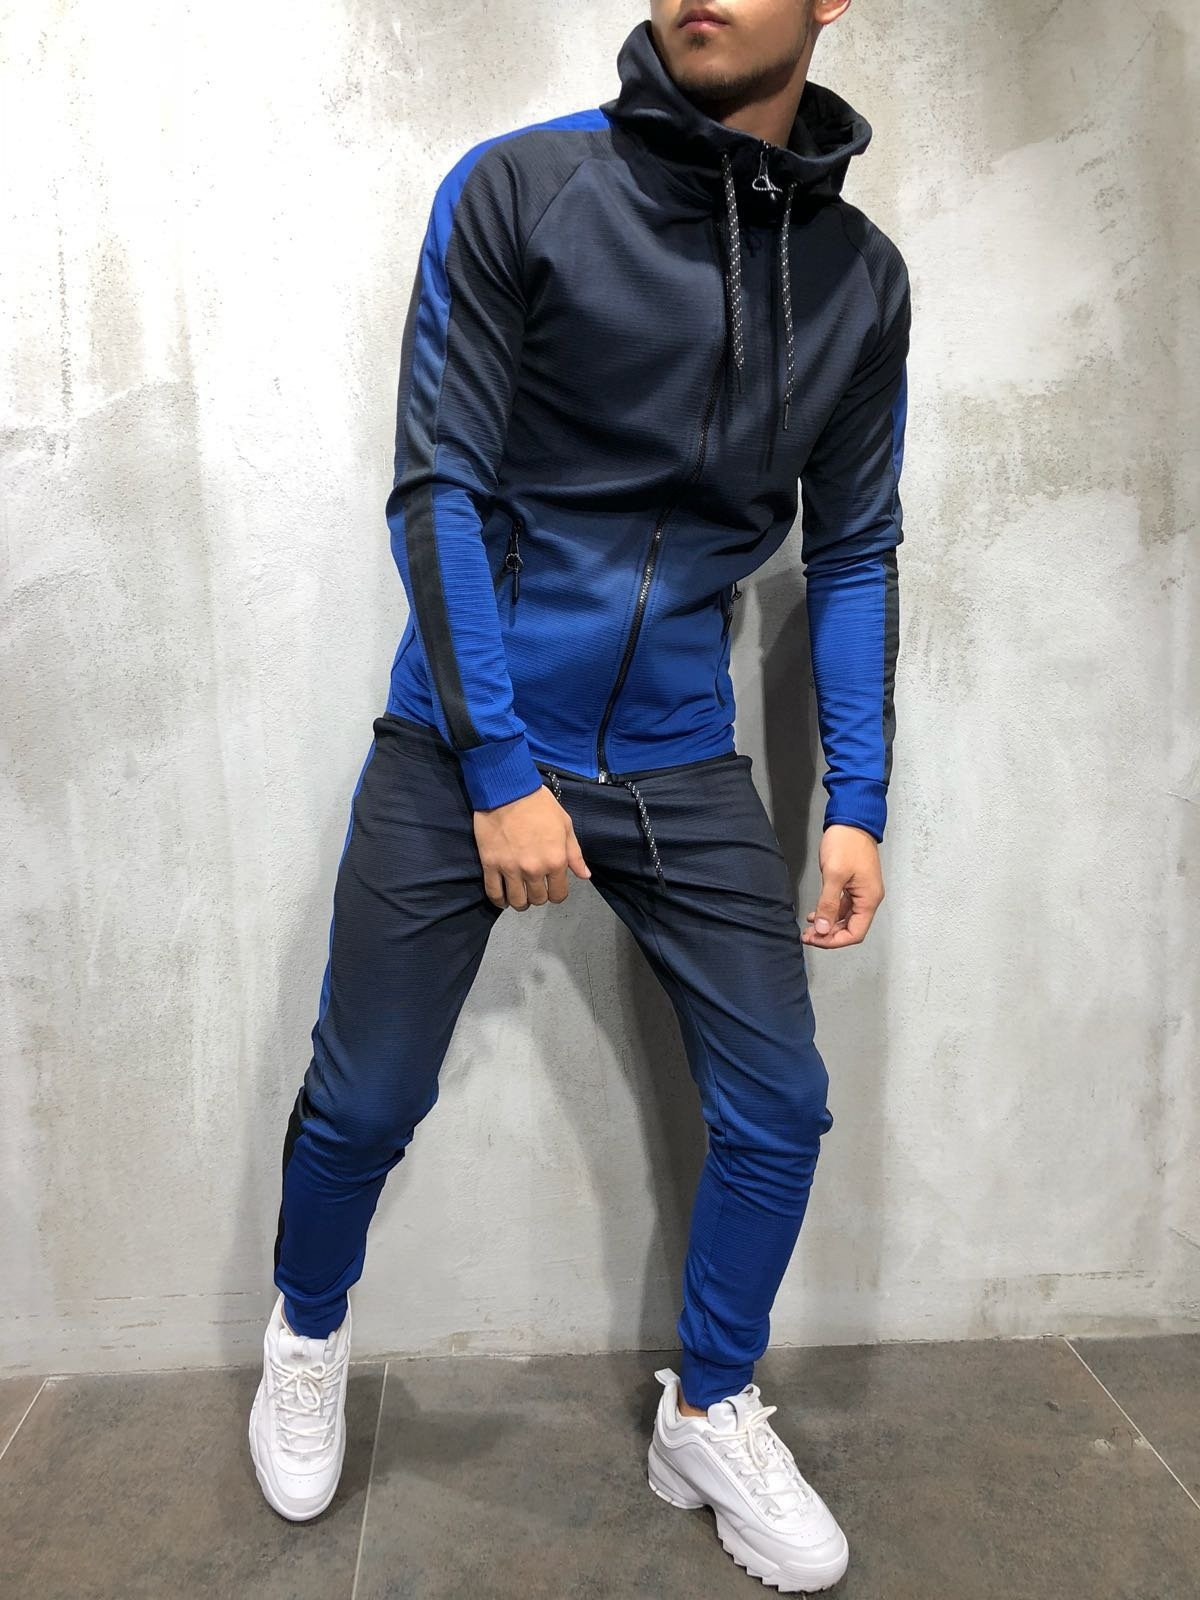 Zogaa 2018 Spring Set Males's Vogue Sportswear Tracksuits Units Males's Bodybuilding Hoodies+Pants Informal Outwear Fits S-Xxxl